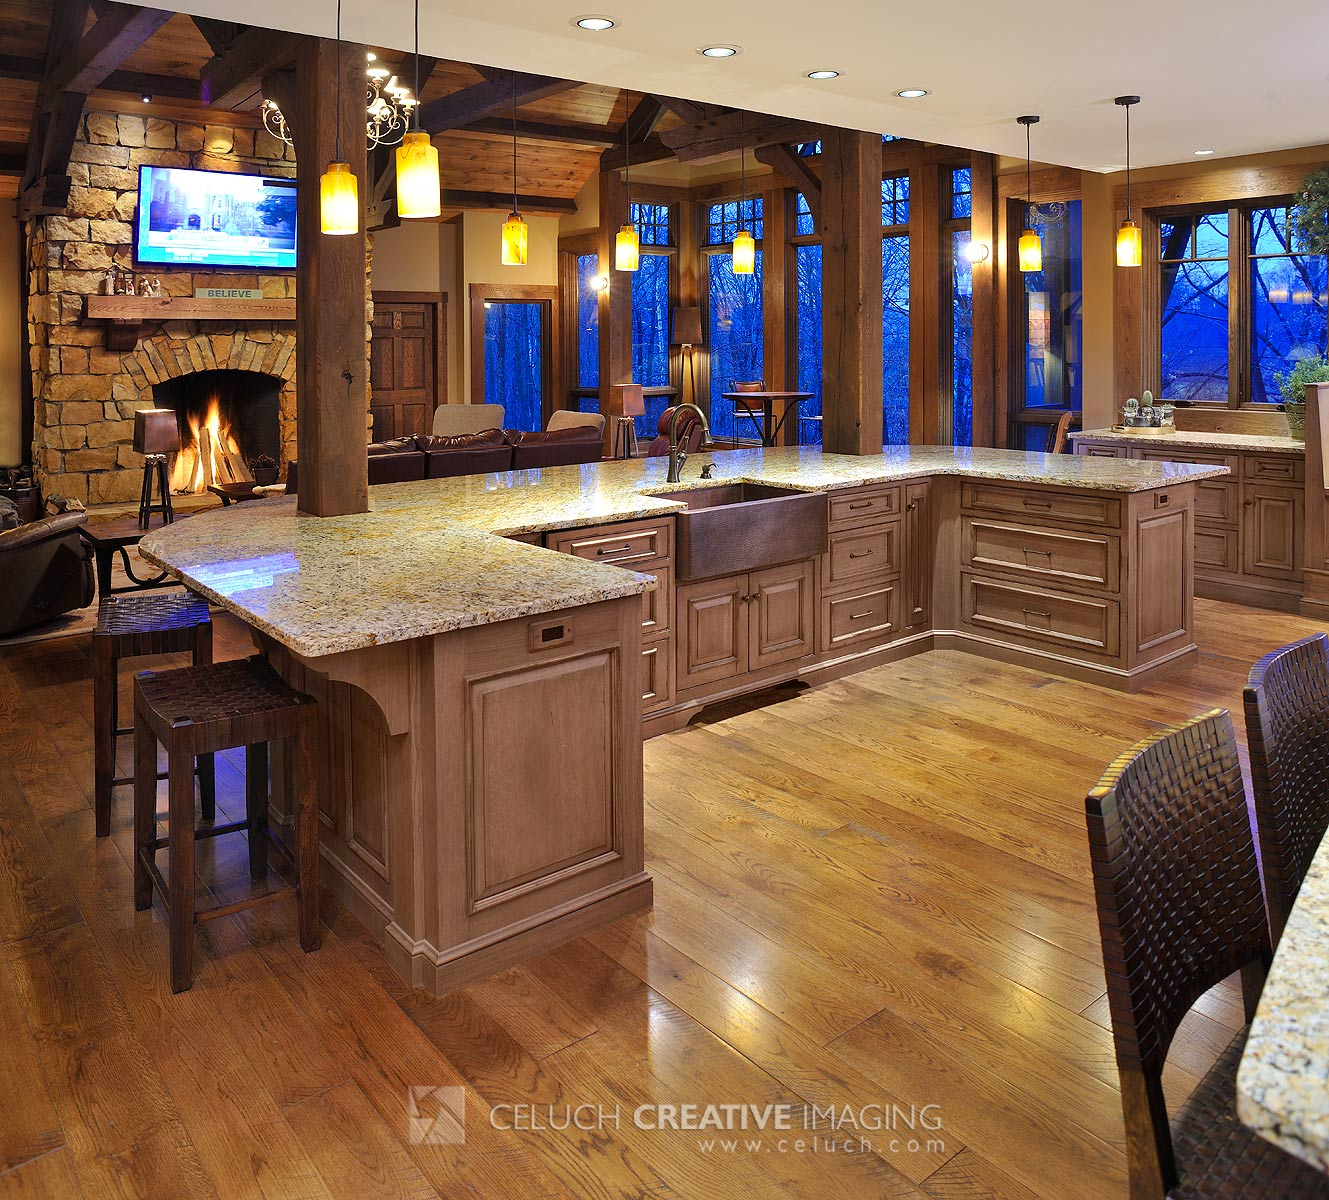 Great Room Kitchen With Large Island: Rustic Hideout In The Woods